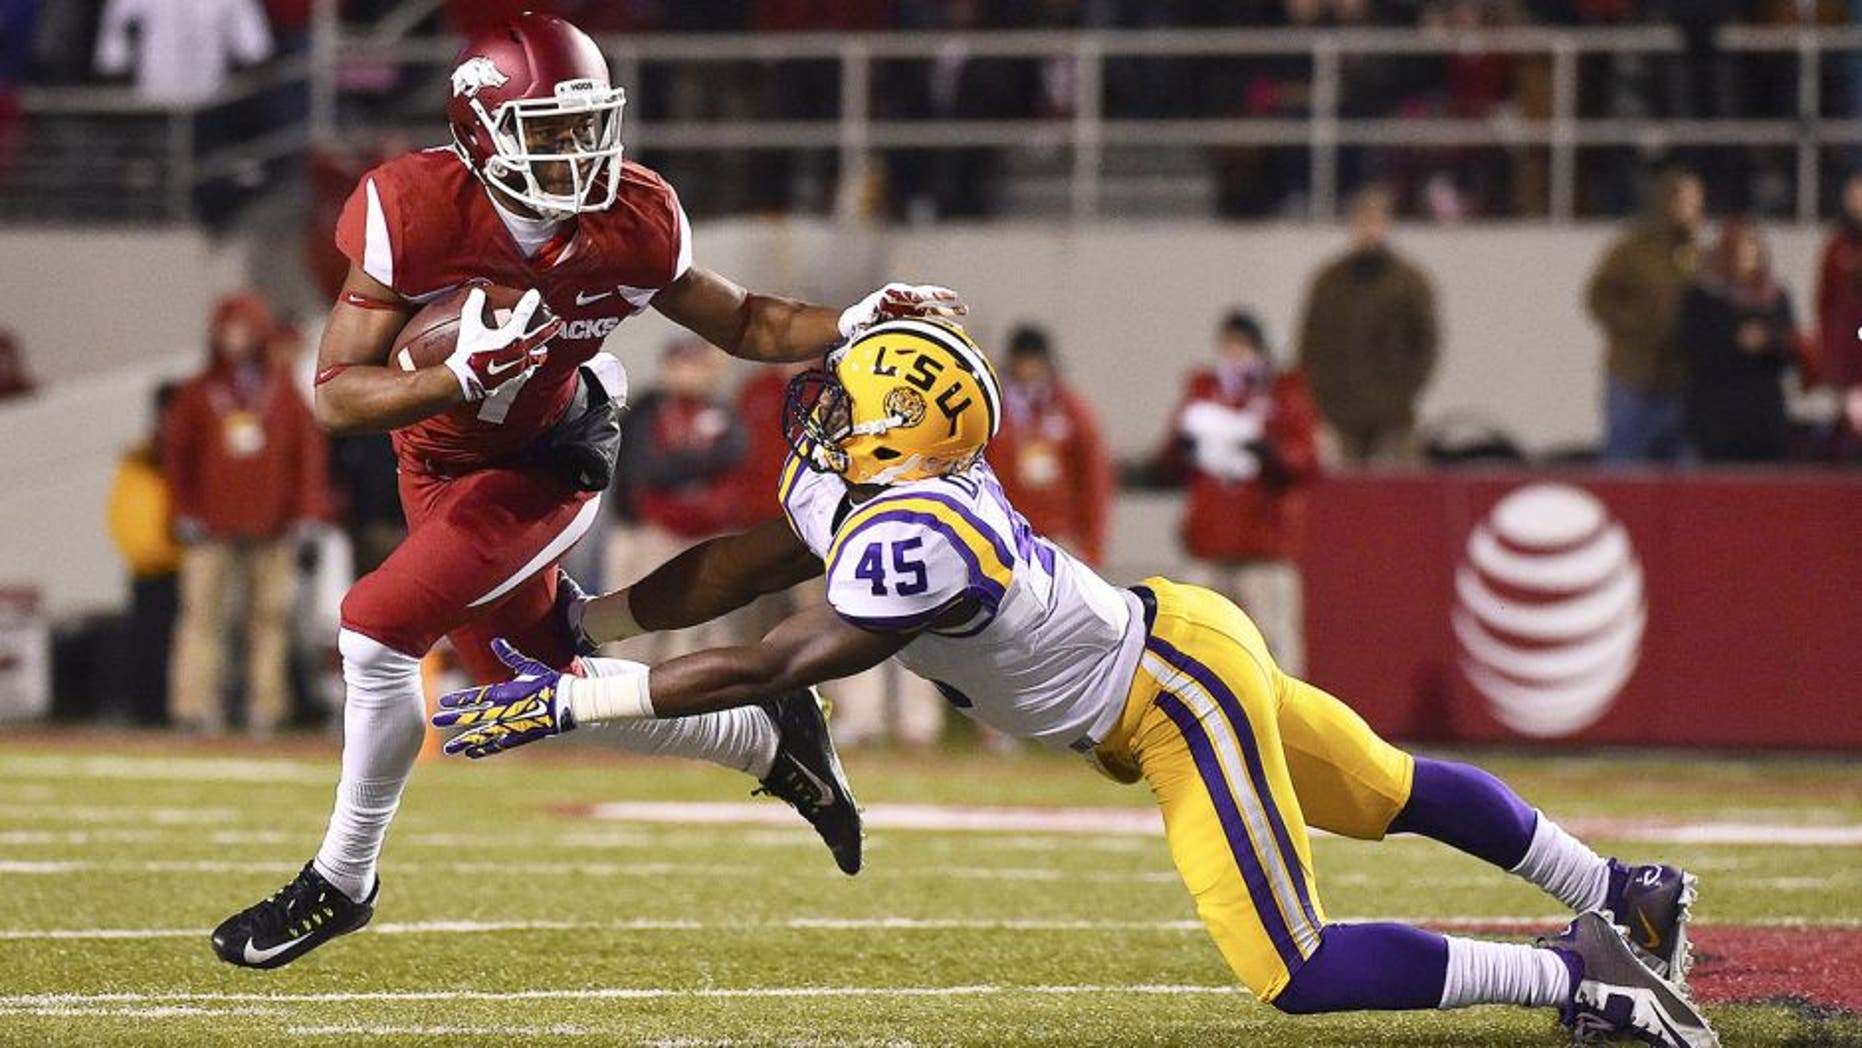 Nov 15, 2014; Fayetteville, AR, USA; Arkansas Razorbacks wide receiver Damon Mitchell (7) breaks the tackle of LSU Tigers linebacker Deion Jones (45) during the first half at Donald W. Reynolds Razorback Stadium. Mandatory Credit: Jasen Vinlove-USA TODAY Sports